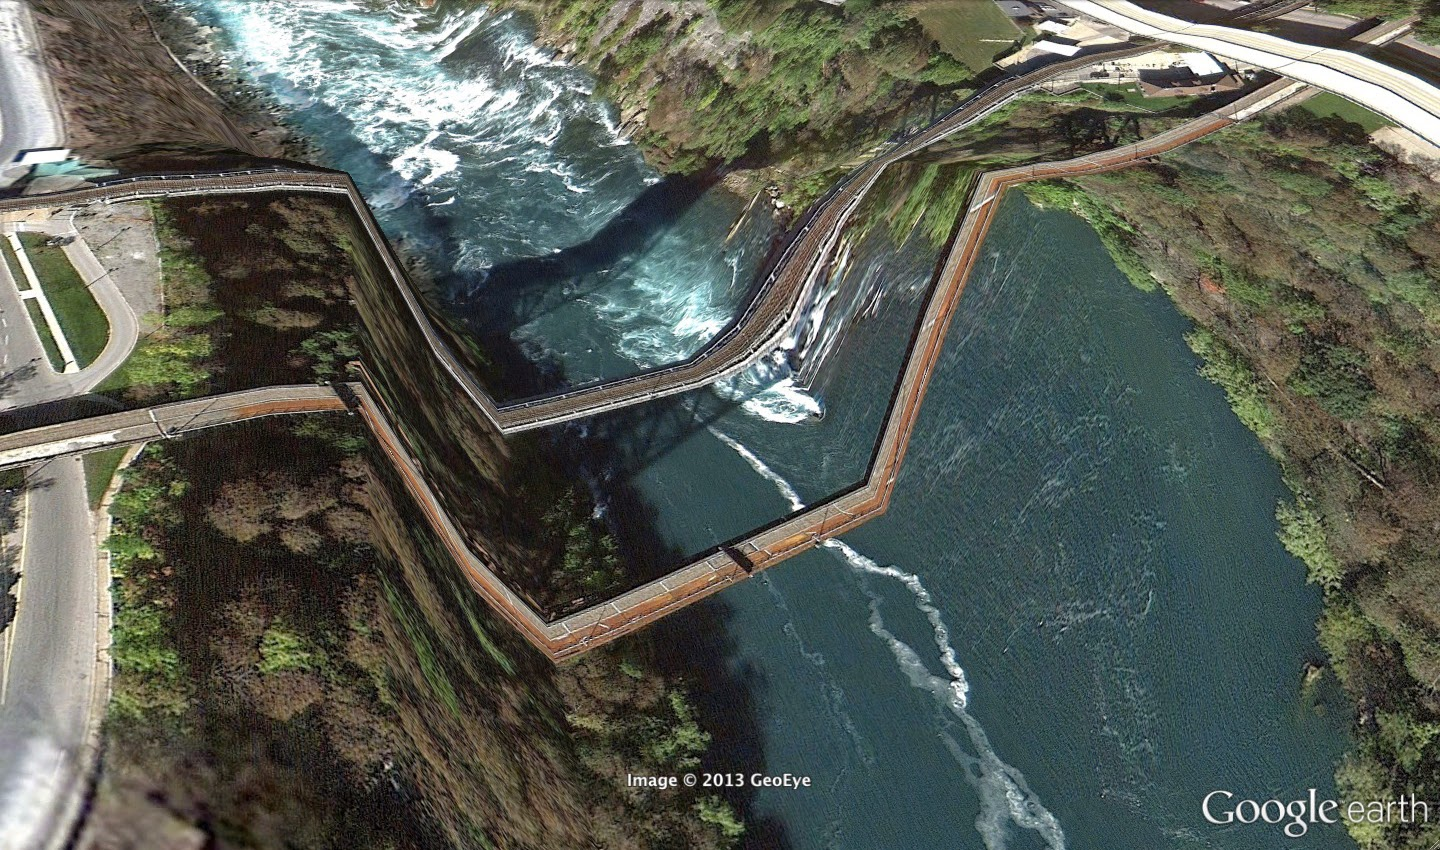 26-Whirlpool-Clement-Valla-Postcards-From-Google-Earth-www-designstack-co